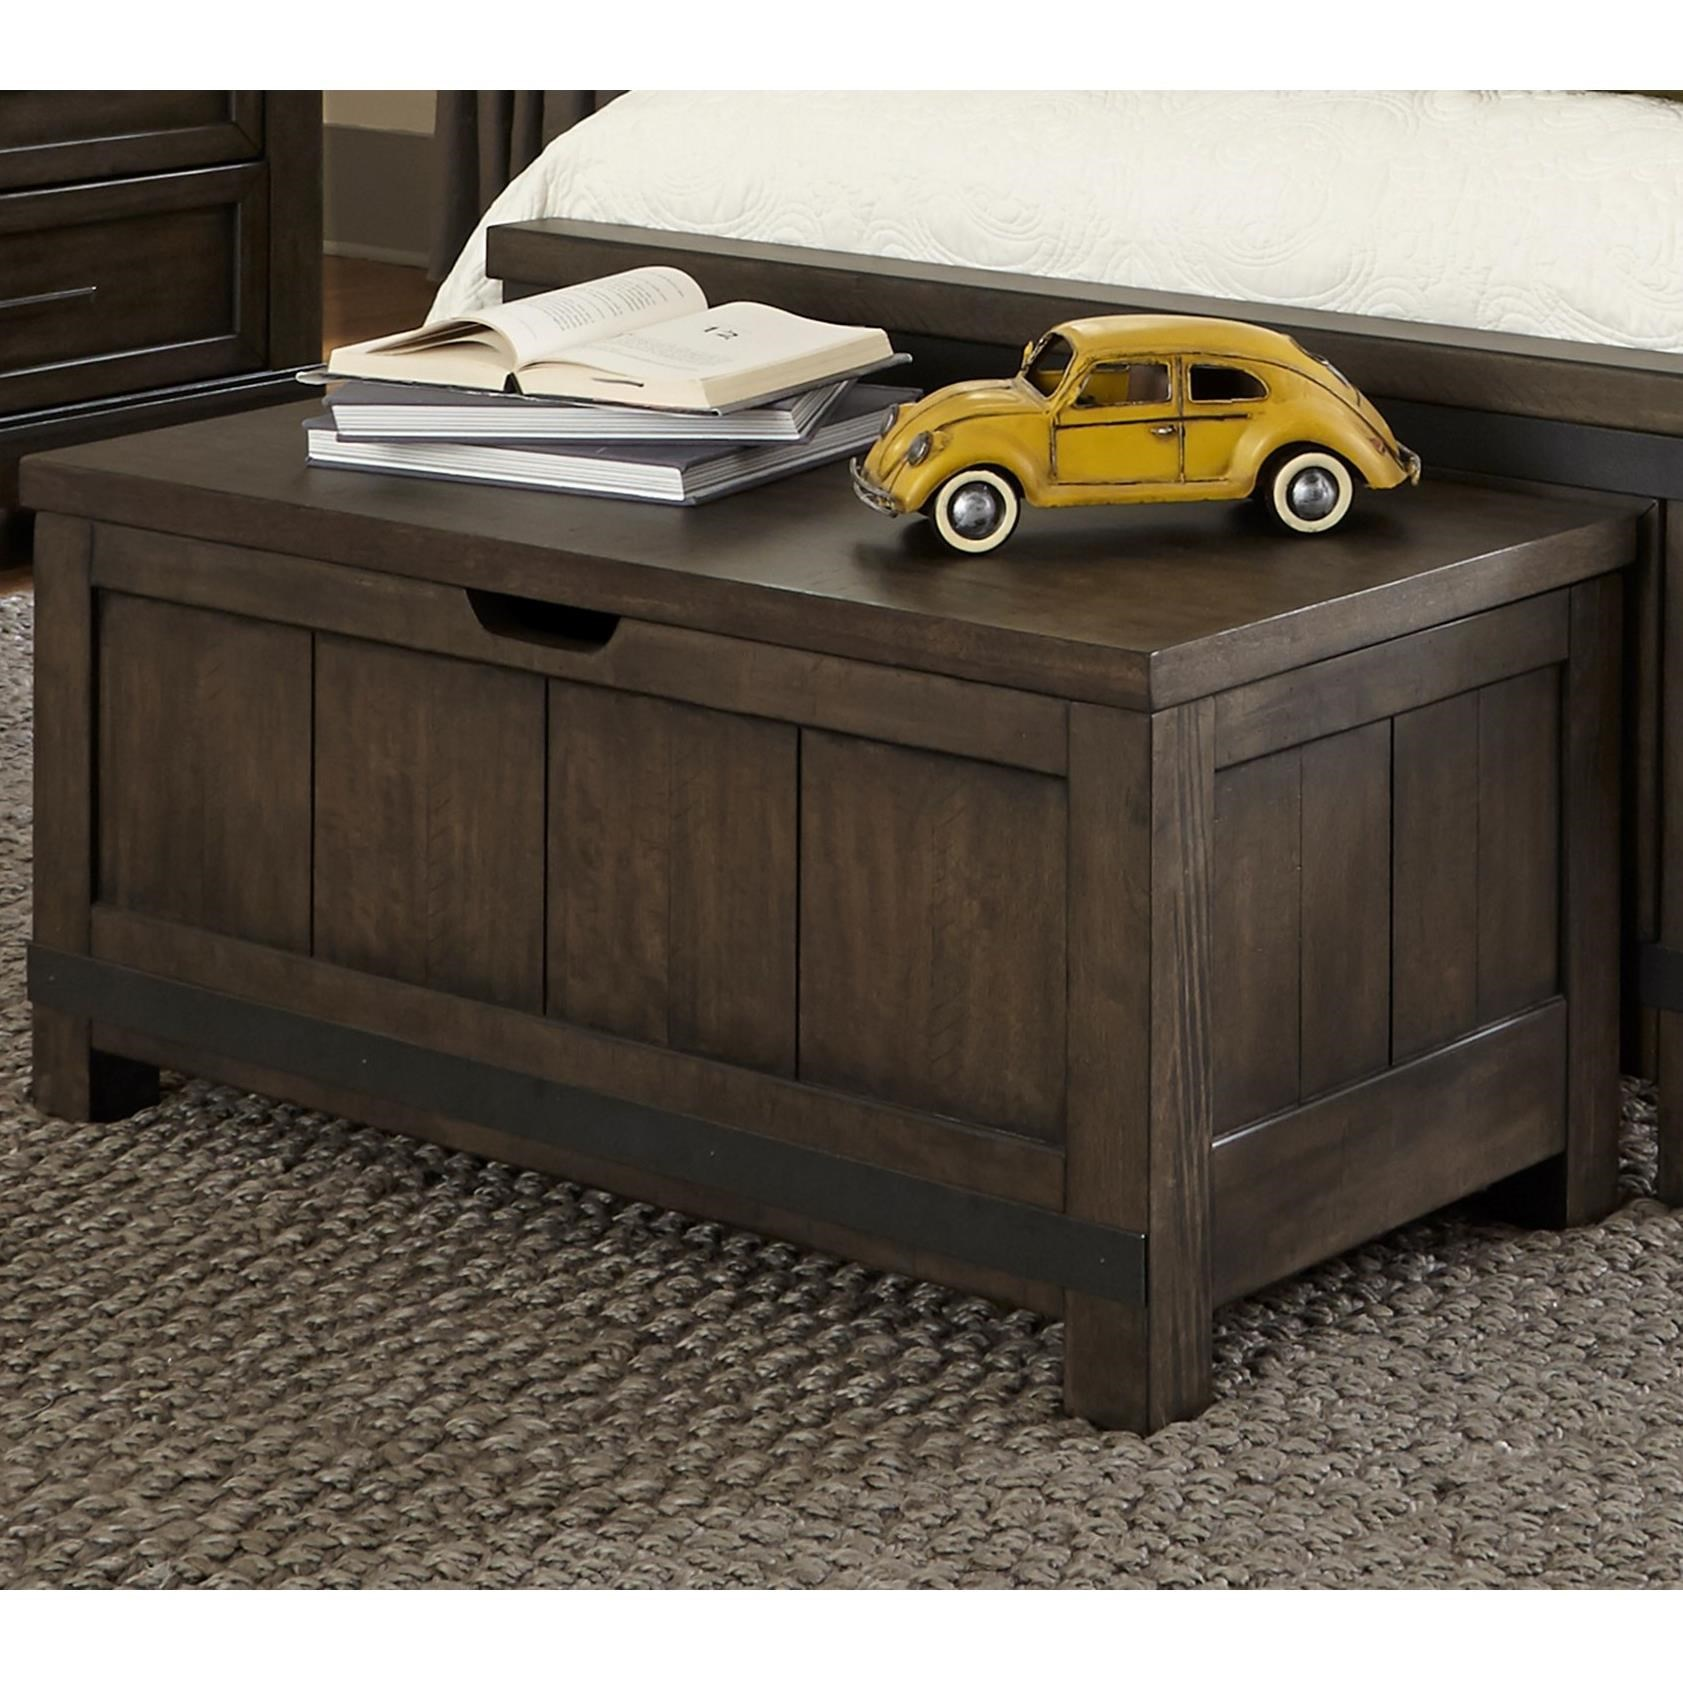 Toy Chests Thornwood Hills Rustic Toy Chest Bench By Liberty Furniture At John V Schultz Furniture